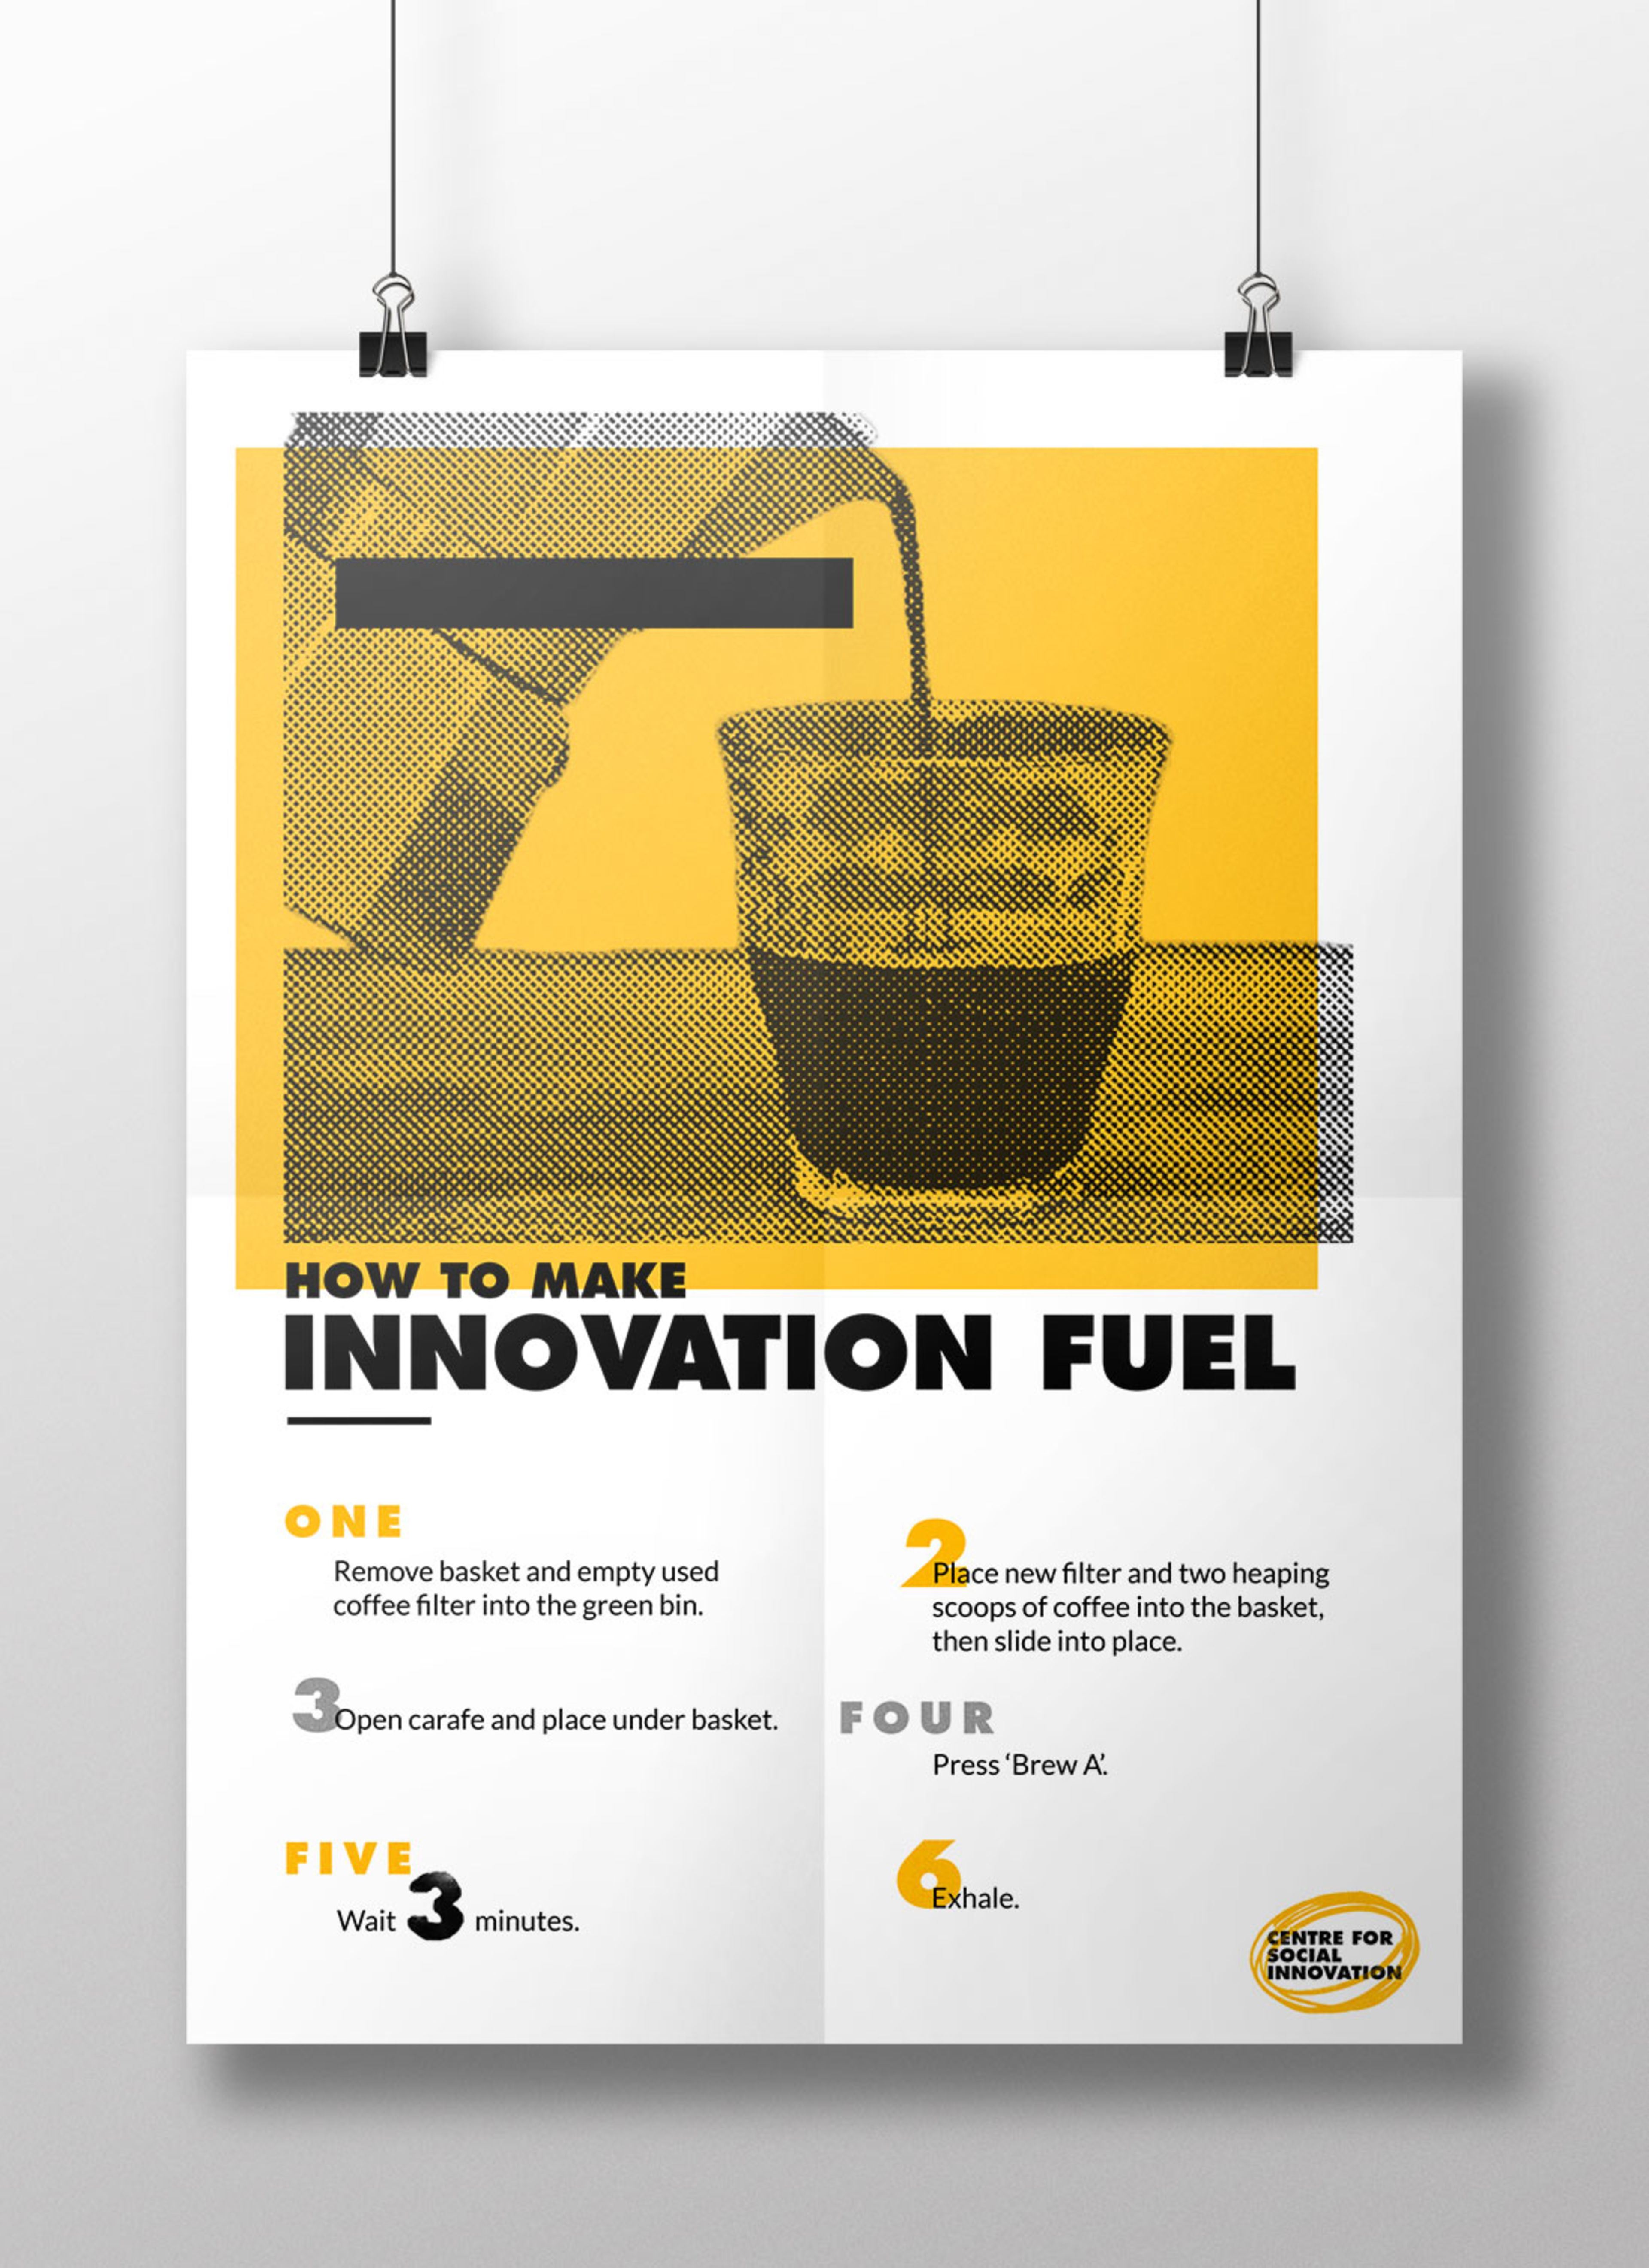 Poster for internal use only. About how to make coffee in the kitchens of CSI